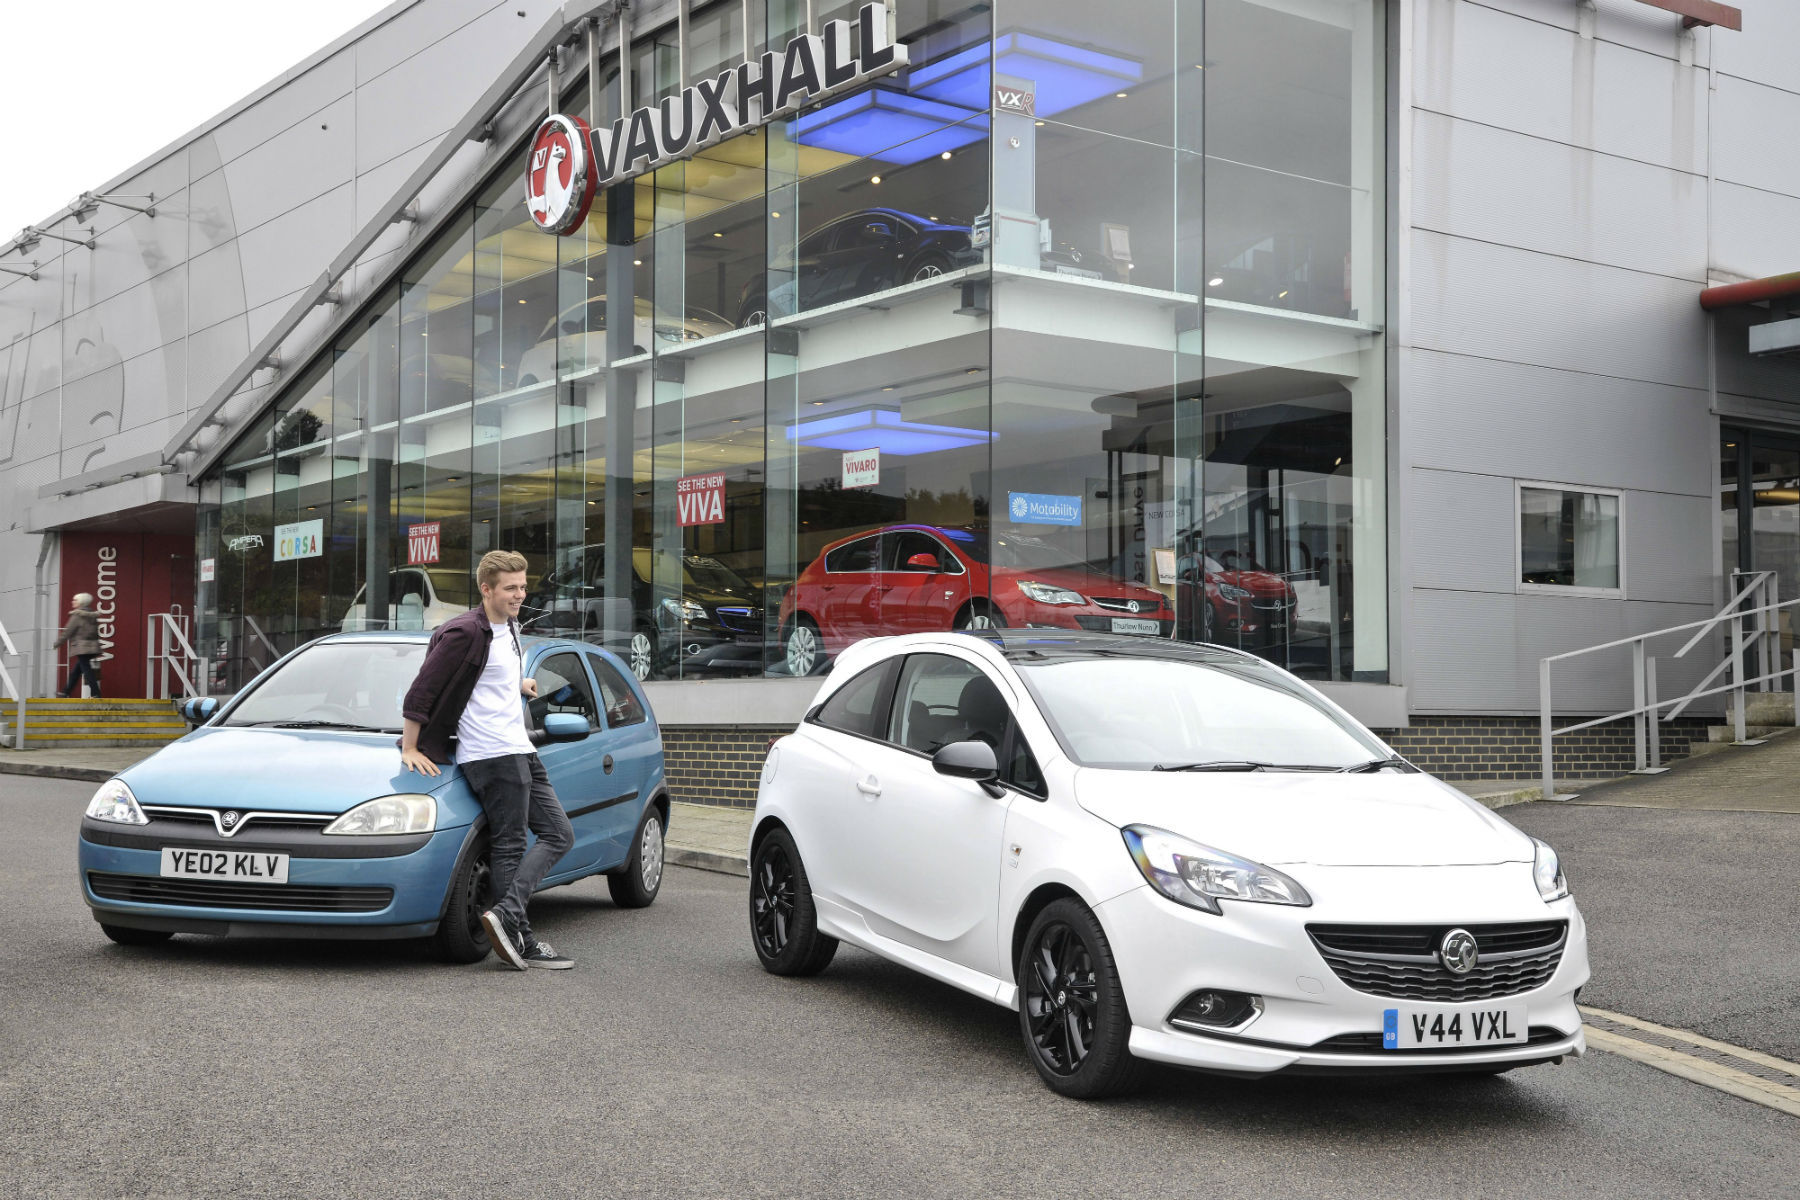 Vauxhall brings back the scrappage scheme